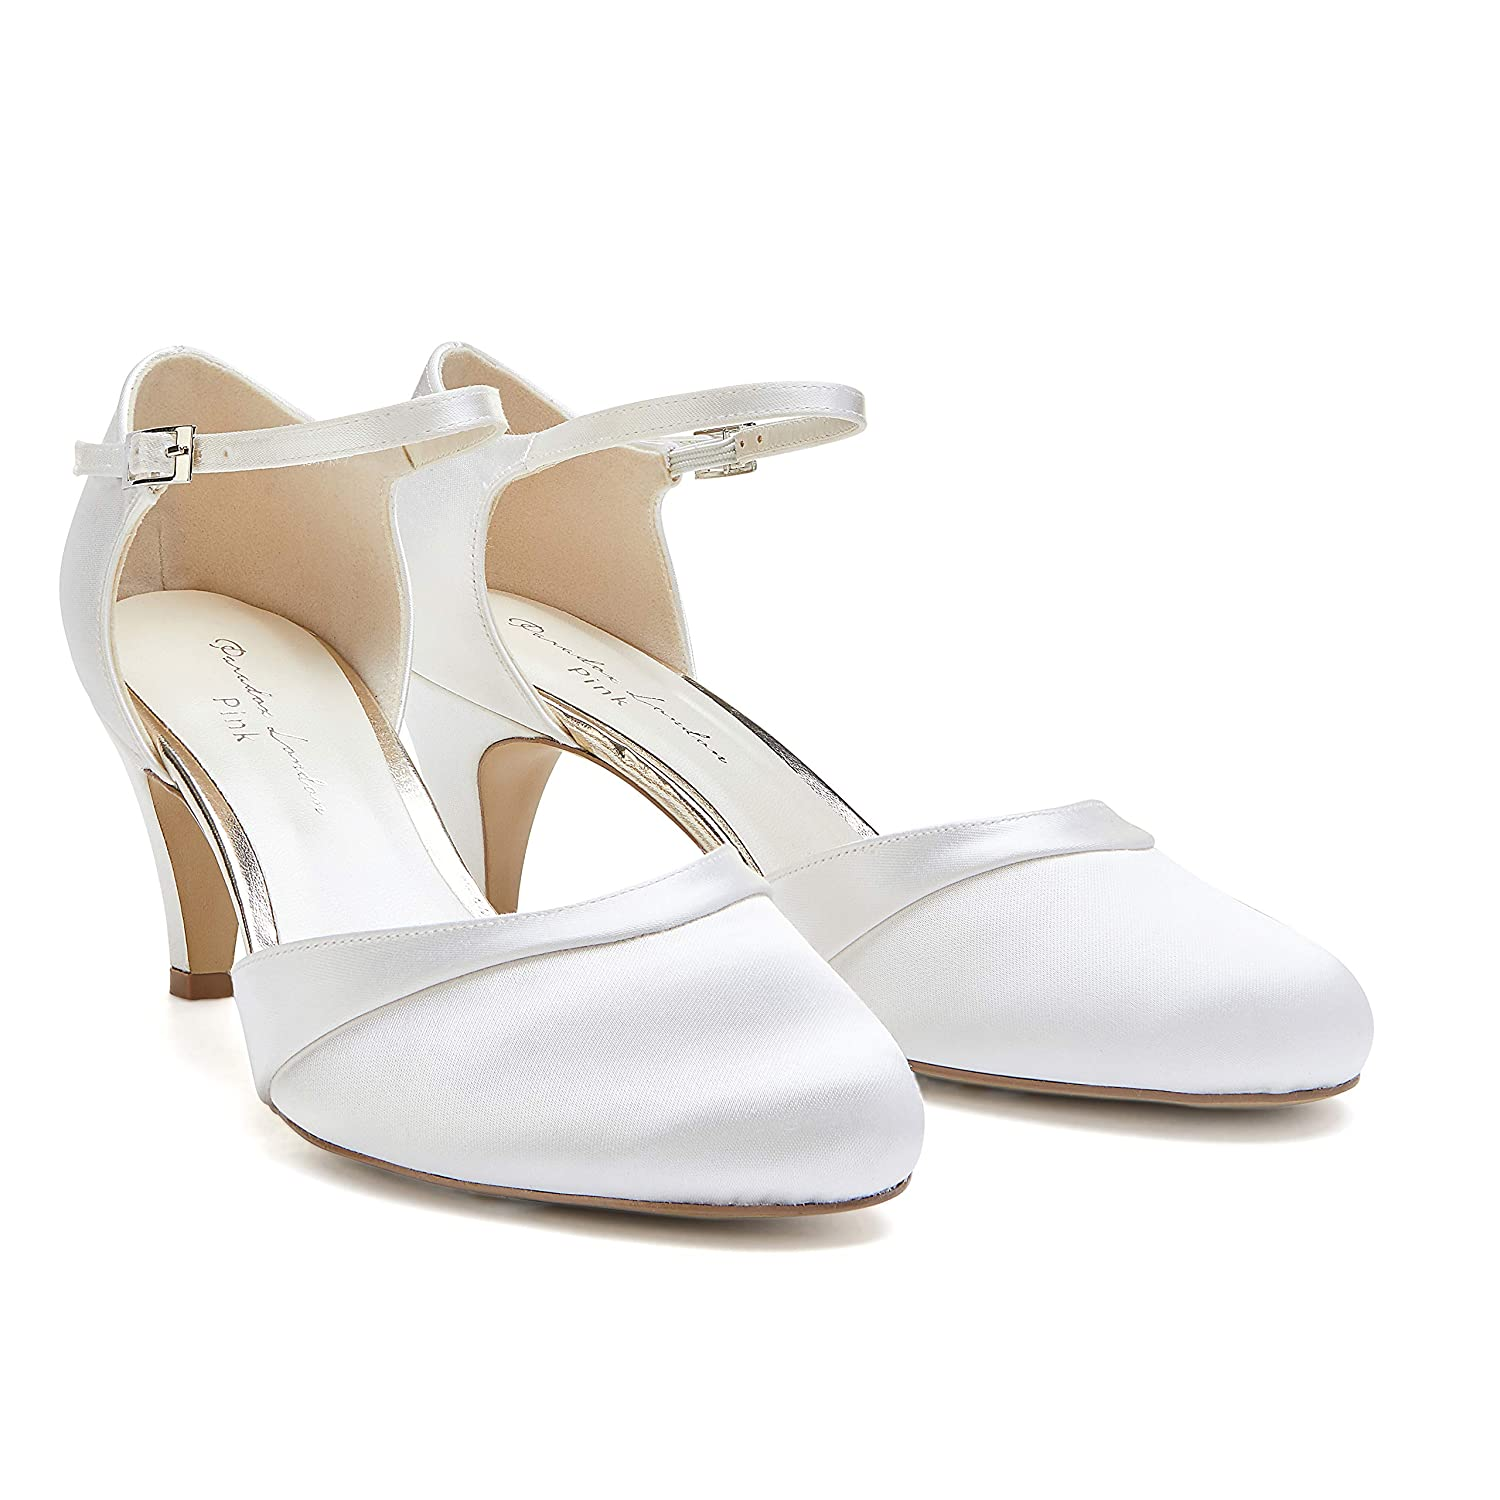 684bff495 Paradox London Women's Augustine Satin Wedding Shoes Bridal Mid Heel Court  Shoes: Amazon.co.uk: Shoes & Bags